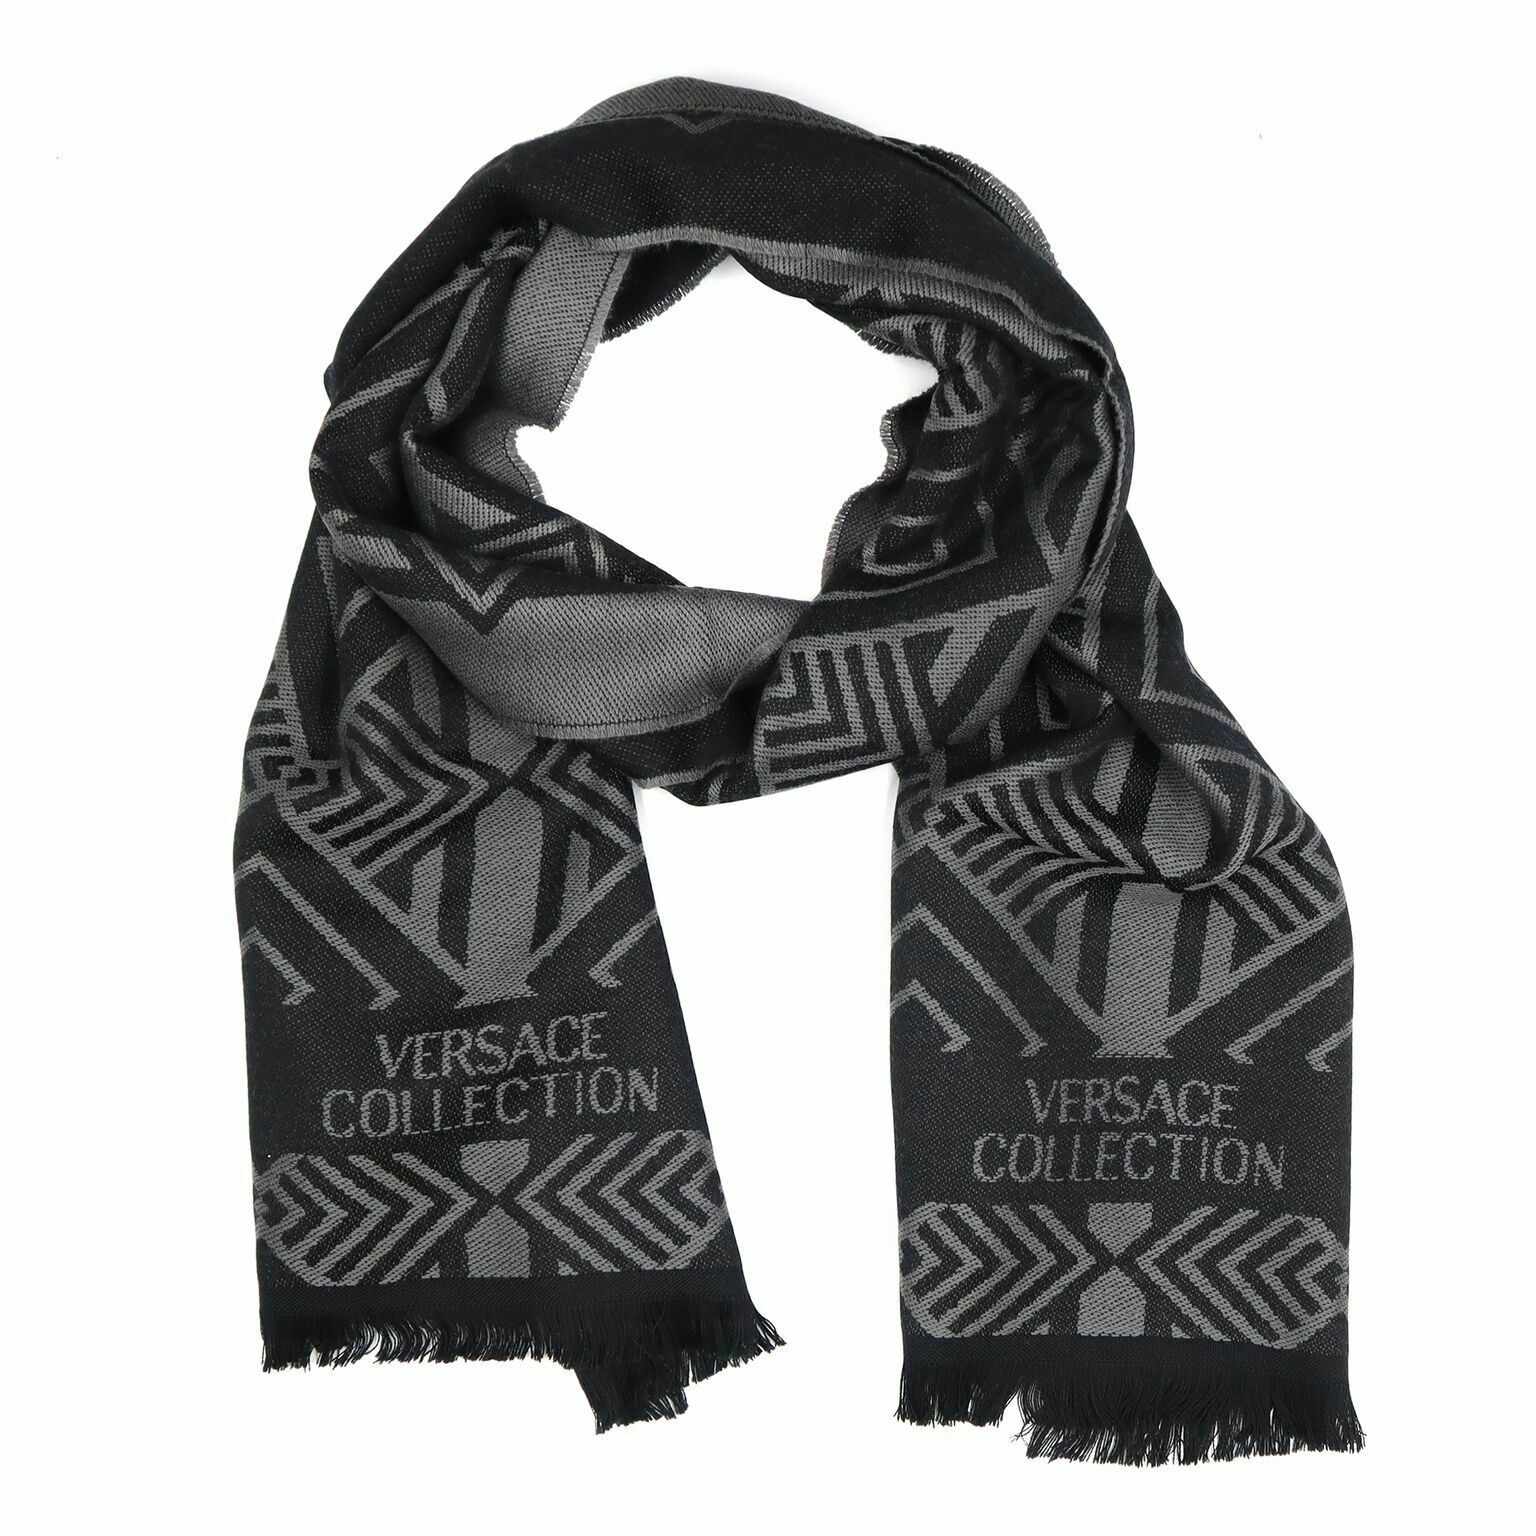 Primary image for Versace Collection Black & Grey Mens Scarf ISC40R1WIT02856I4019